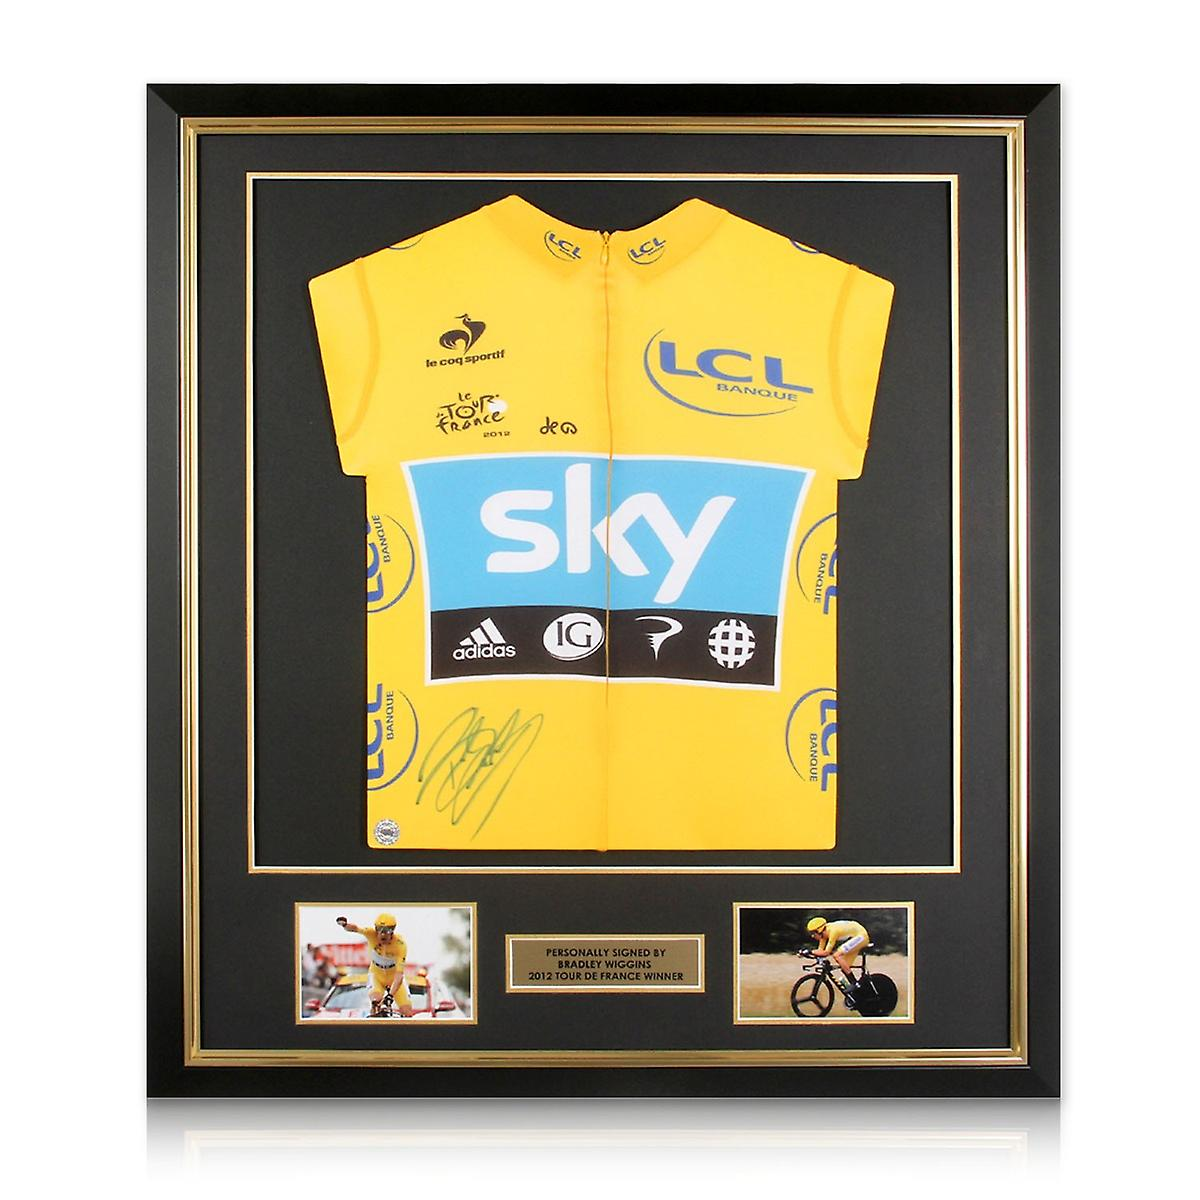 Bradley Wiggins Signed Tour De France 2012 Yellow Jersey Deluxe Frame